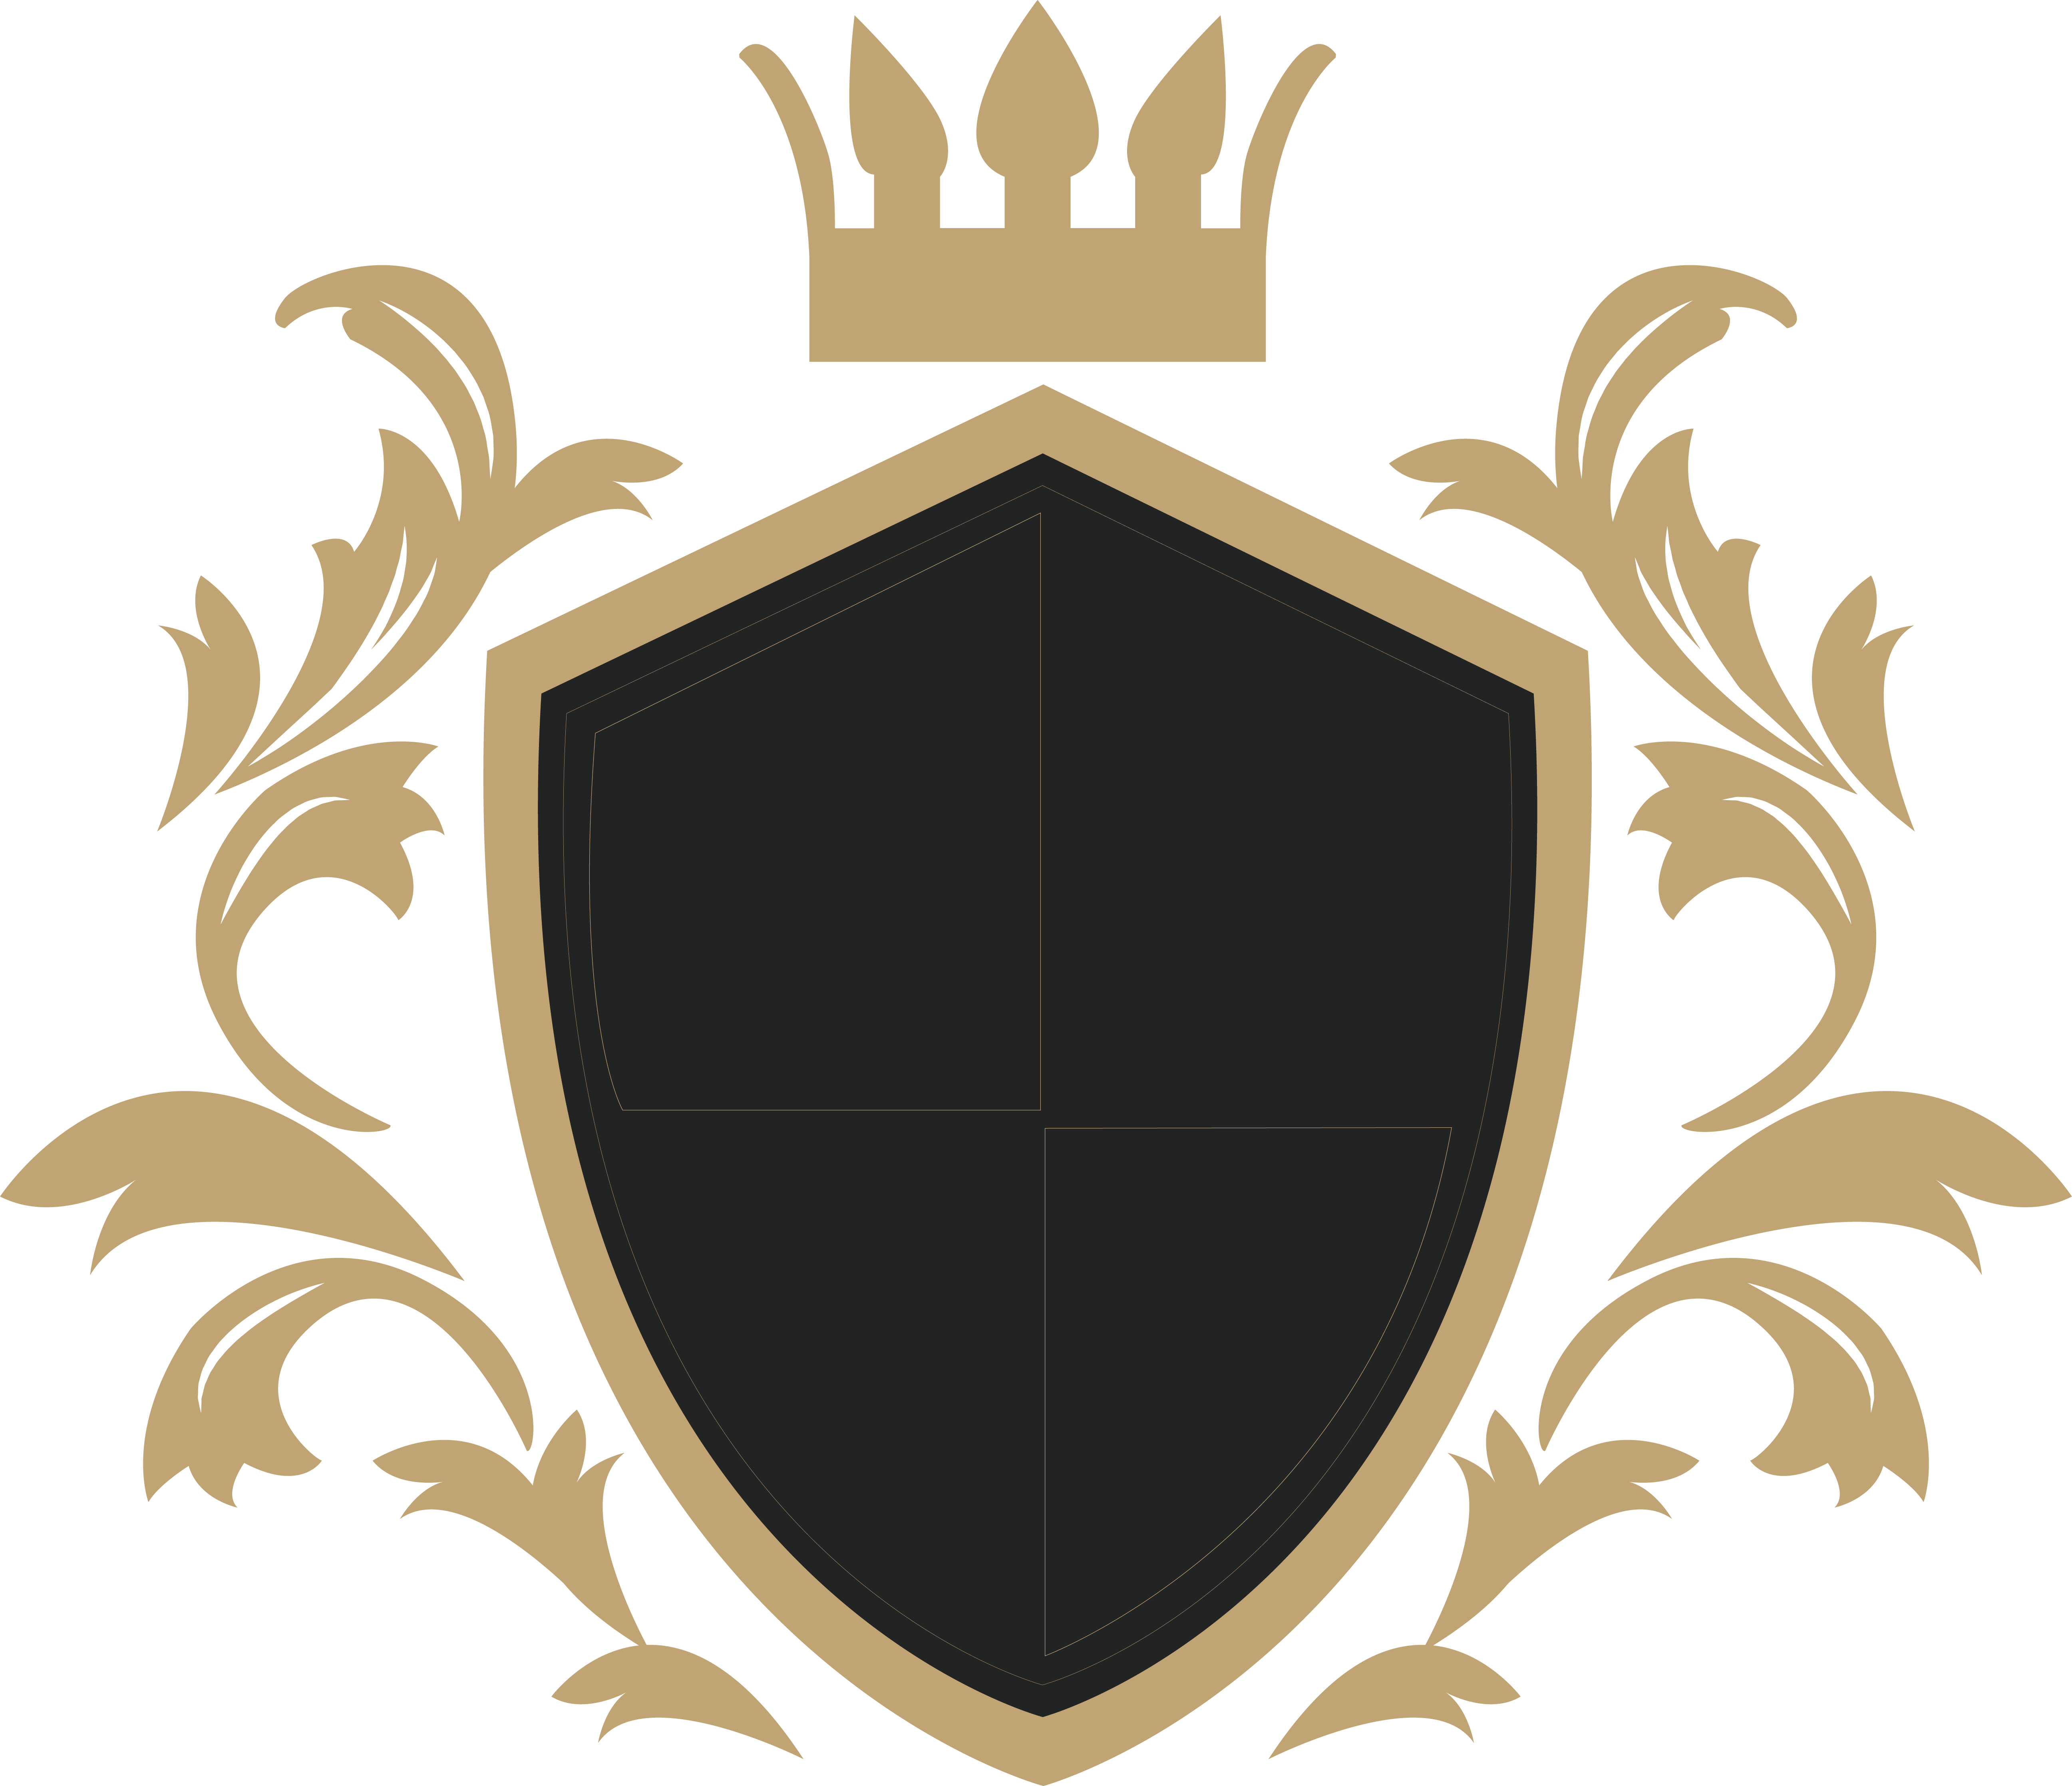 Shield Free PNG Image.